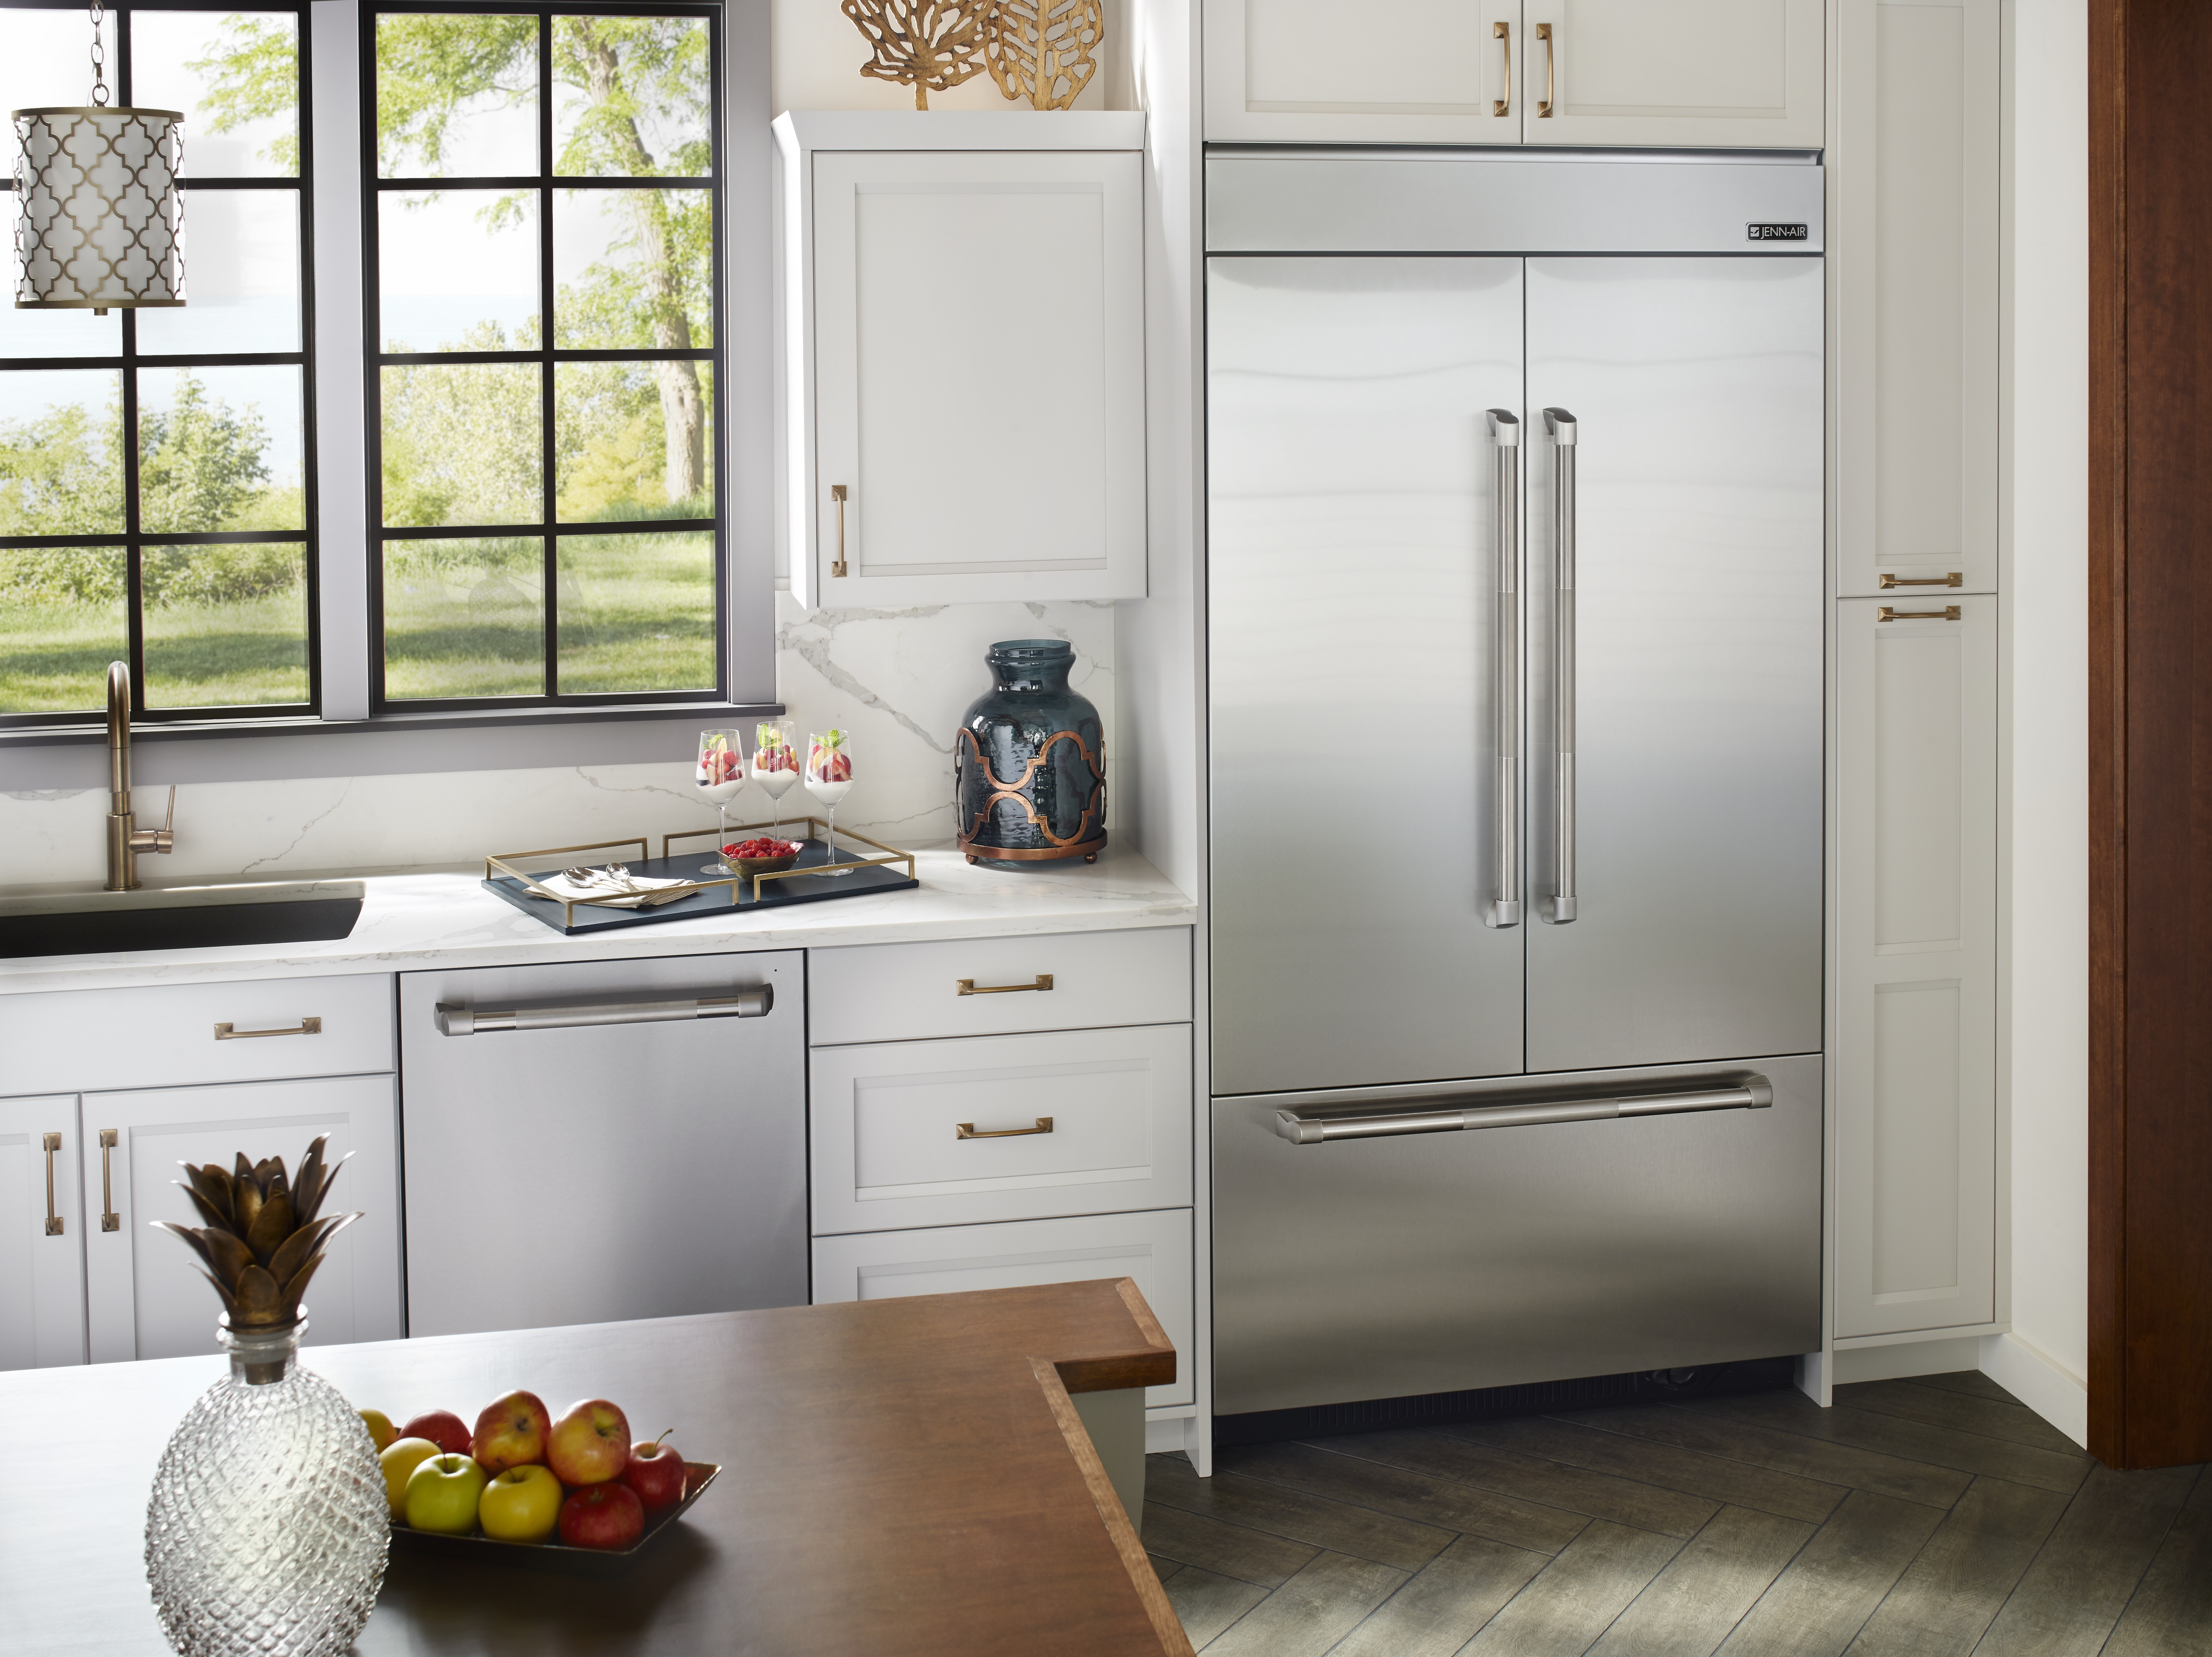 42 Fridge Jenn Air 42 Inch Built In French Door Refrigerator Jf42nxfxde